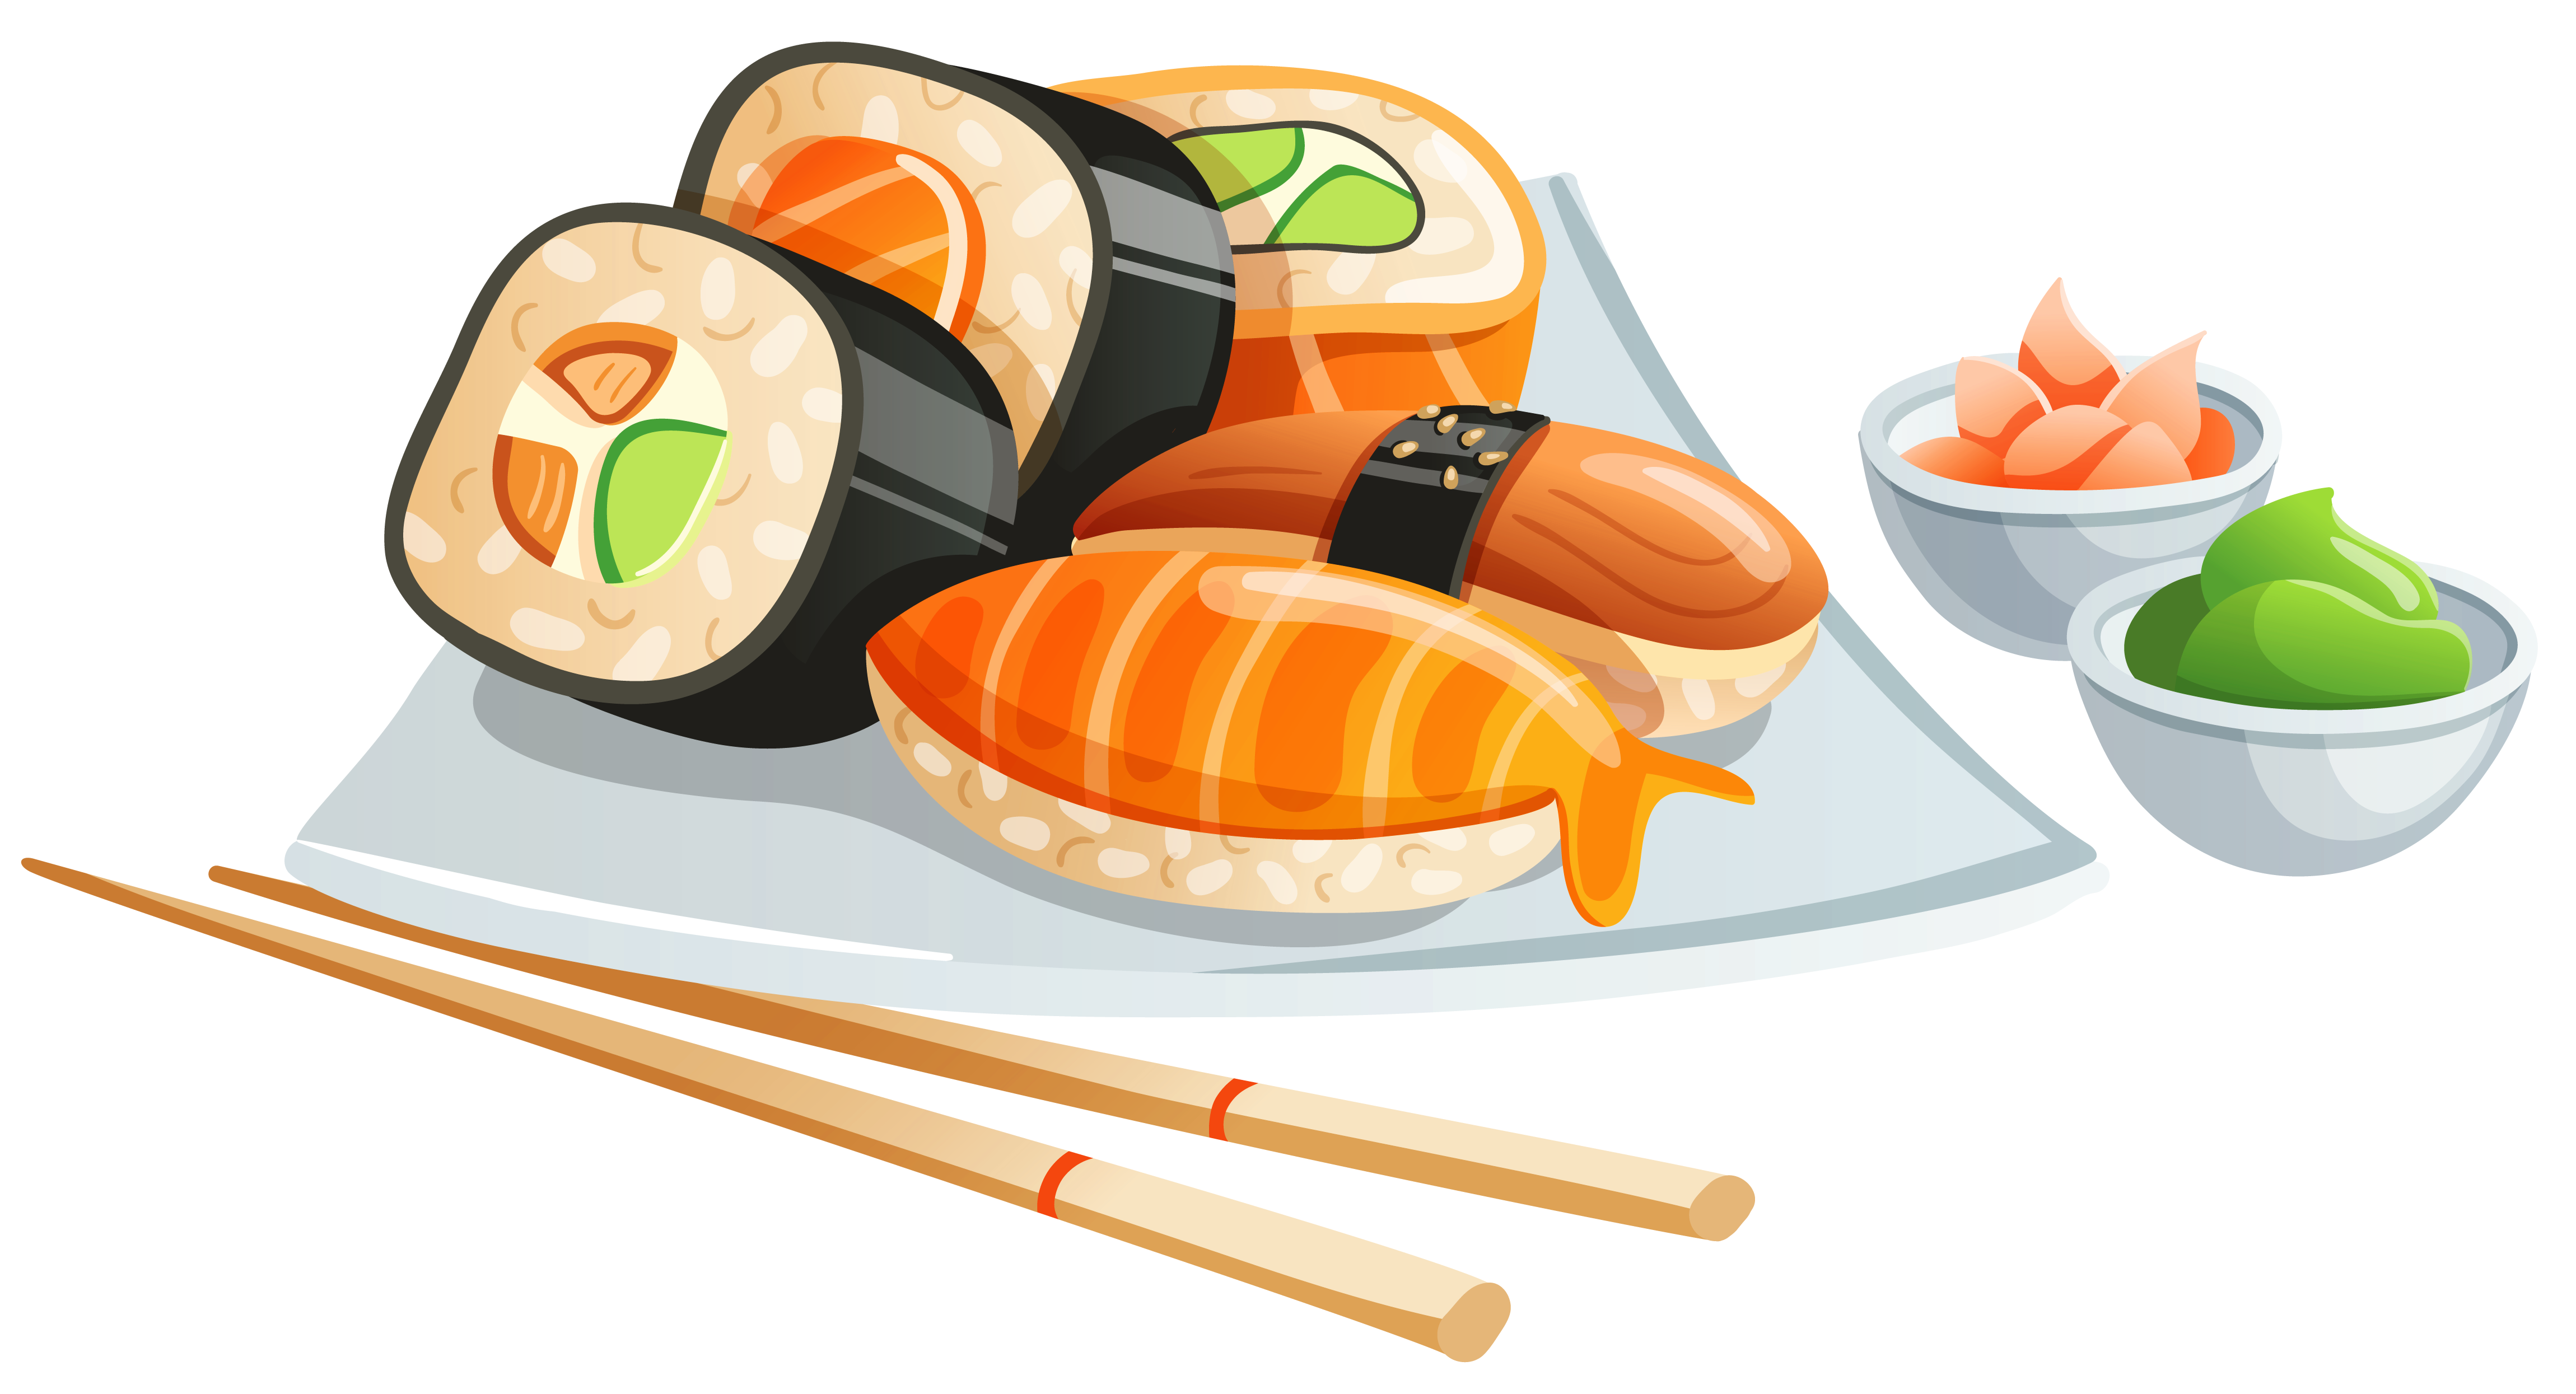 banner free download Sushi PNG Clipart Image